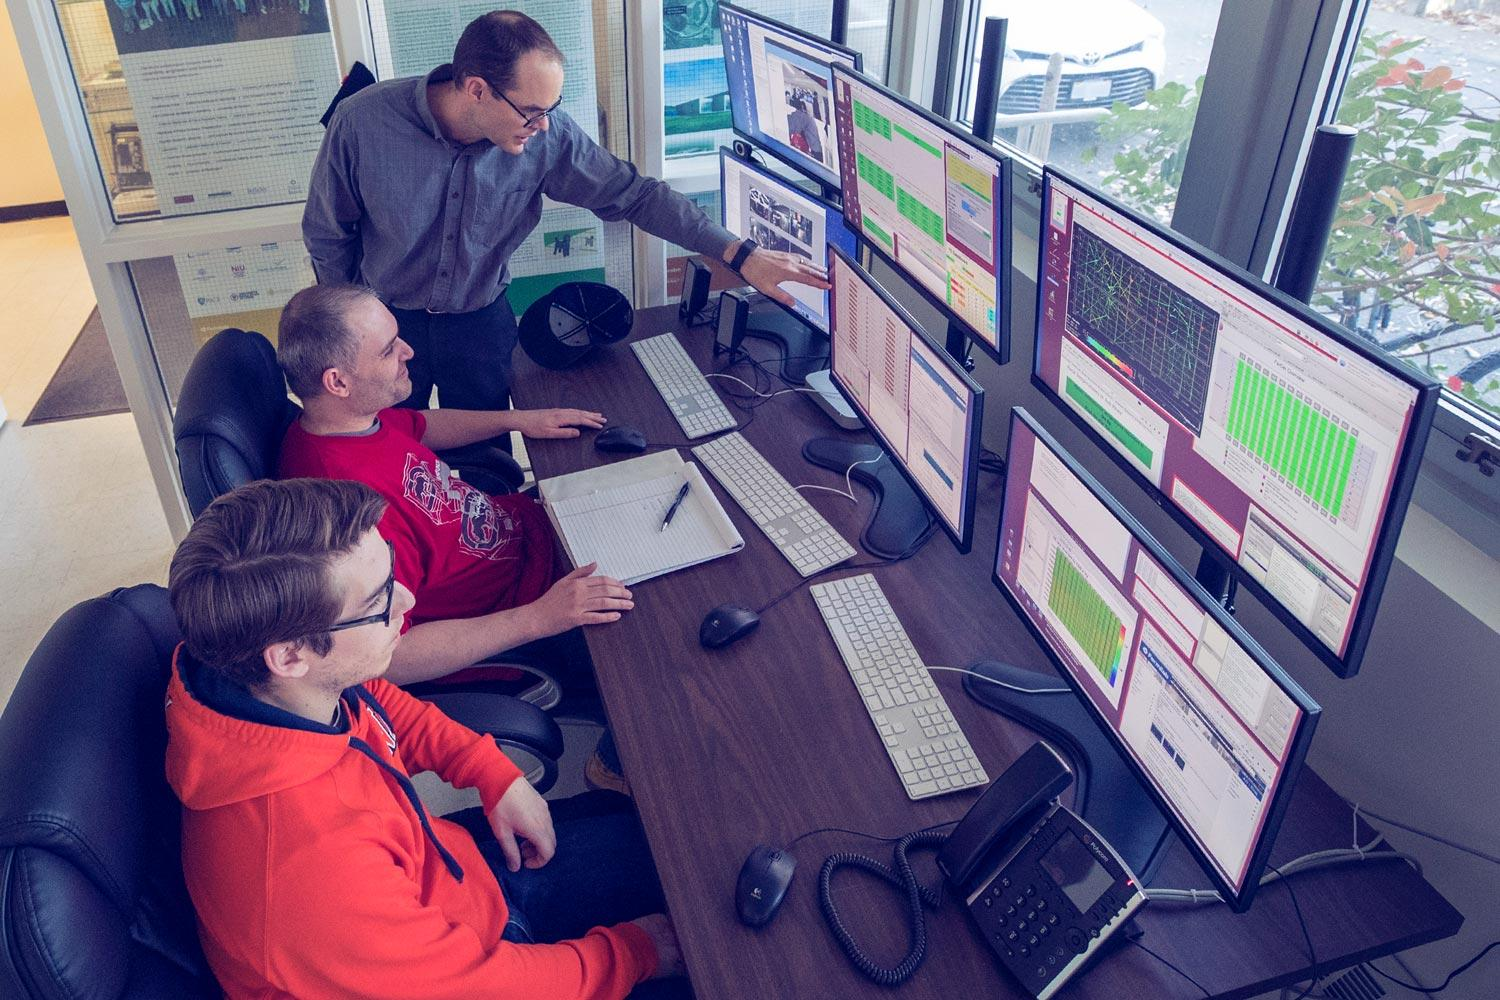 Physicists Craig Group (top) and Ralf Ehrlich and physics student Peter Farris at the NOvA monitor and control station installed at UVA by Ehrlich.